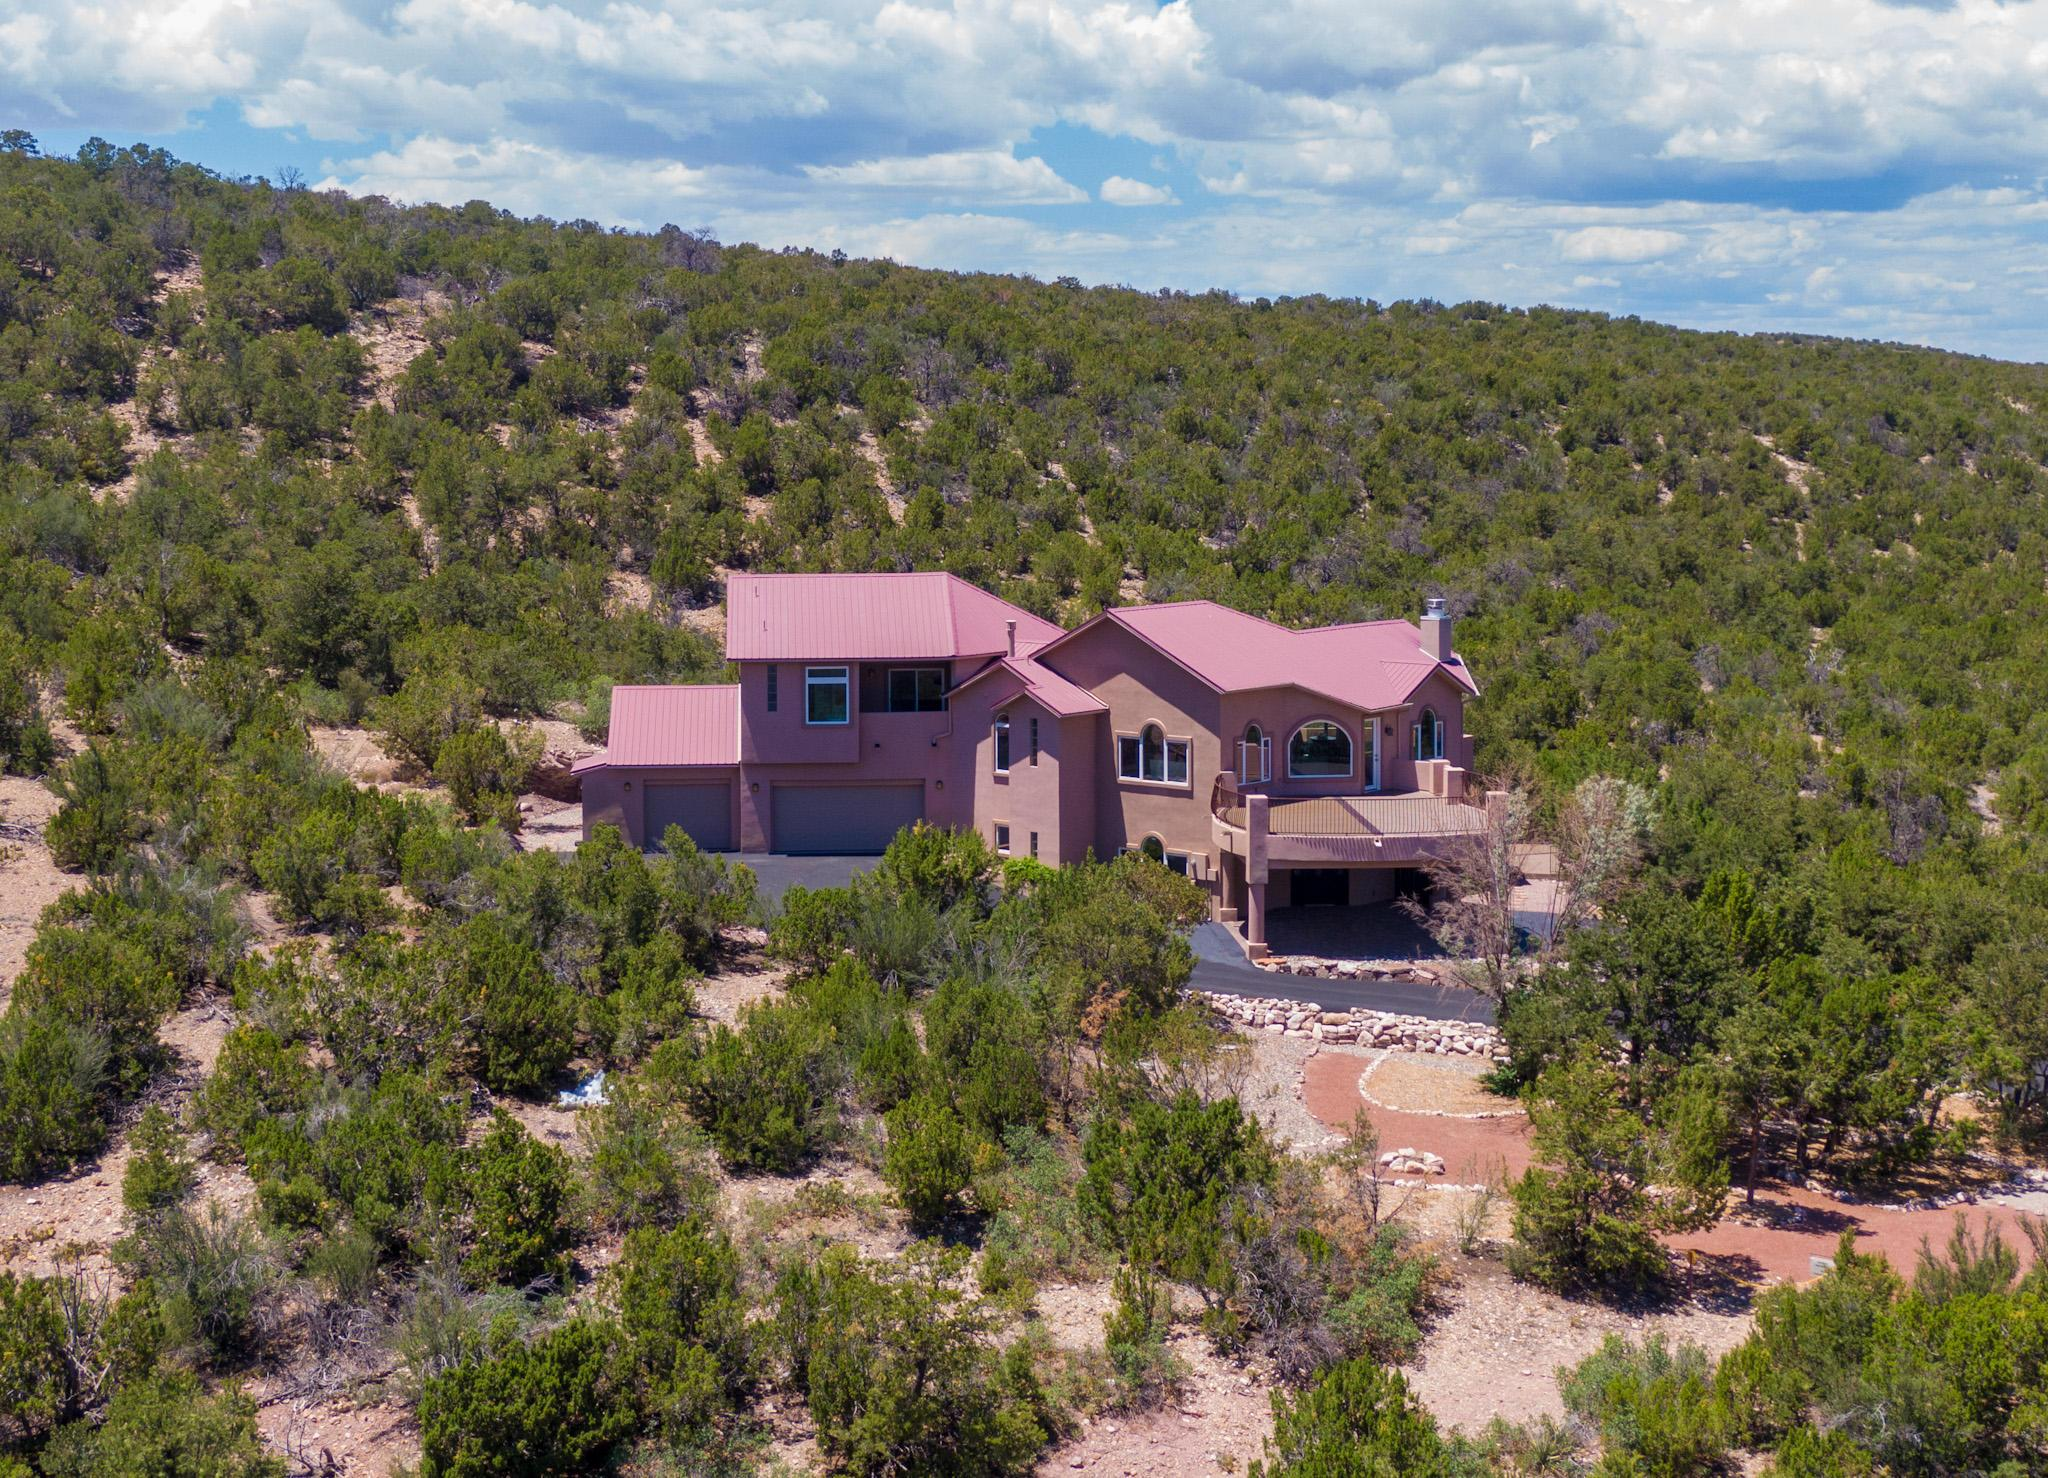 Looking for the perfect New Mexican retreat?  This beautiful home offers a tranquil and private mountain setting and is the last estate before the Cibola National Forest.  This truly unique home has a landscaped entrance, low light pollution for night skies and is nestled within 5 acres that lead into miles of National Forest and Sandia Crest hiking trails surrounded by amazing views.  Prior to entering this home take a walk through the Native American Spirit Walk Labyrinth.  Custom Venetian plaster walls throughout, radiant in-floor heat, specialty carpeting in three luscious bedrooms and access to exterior decks with views adorn a wonderfully flowing floor plan. The custom kitchen has cherry wood cabinets with German New Antique glass doors, Madagascar Labradorite counter tops, indirect